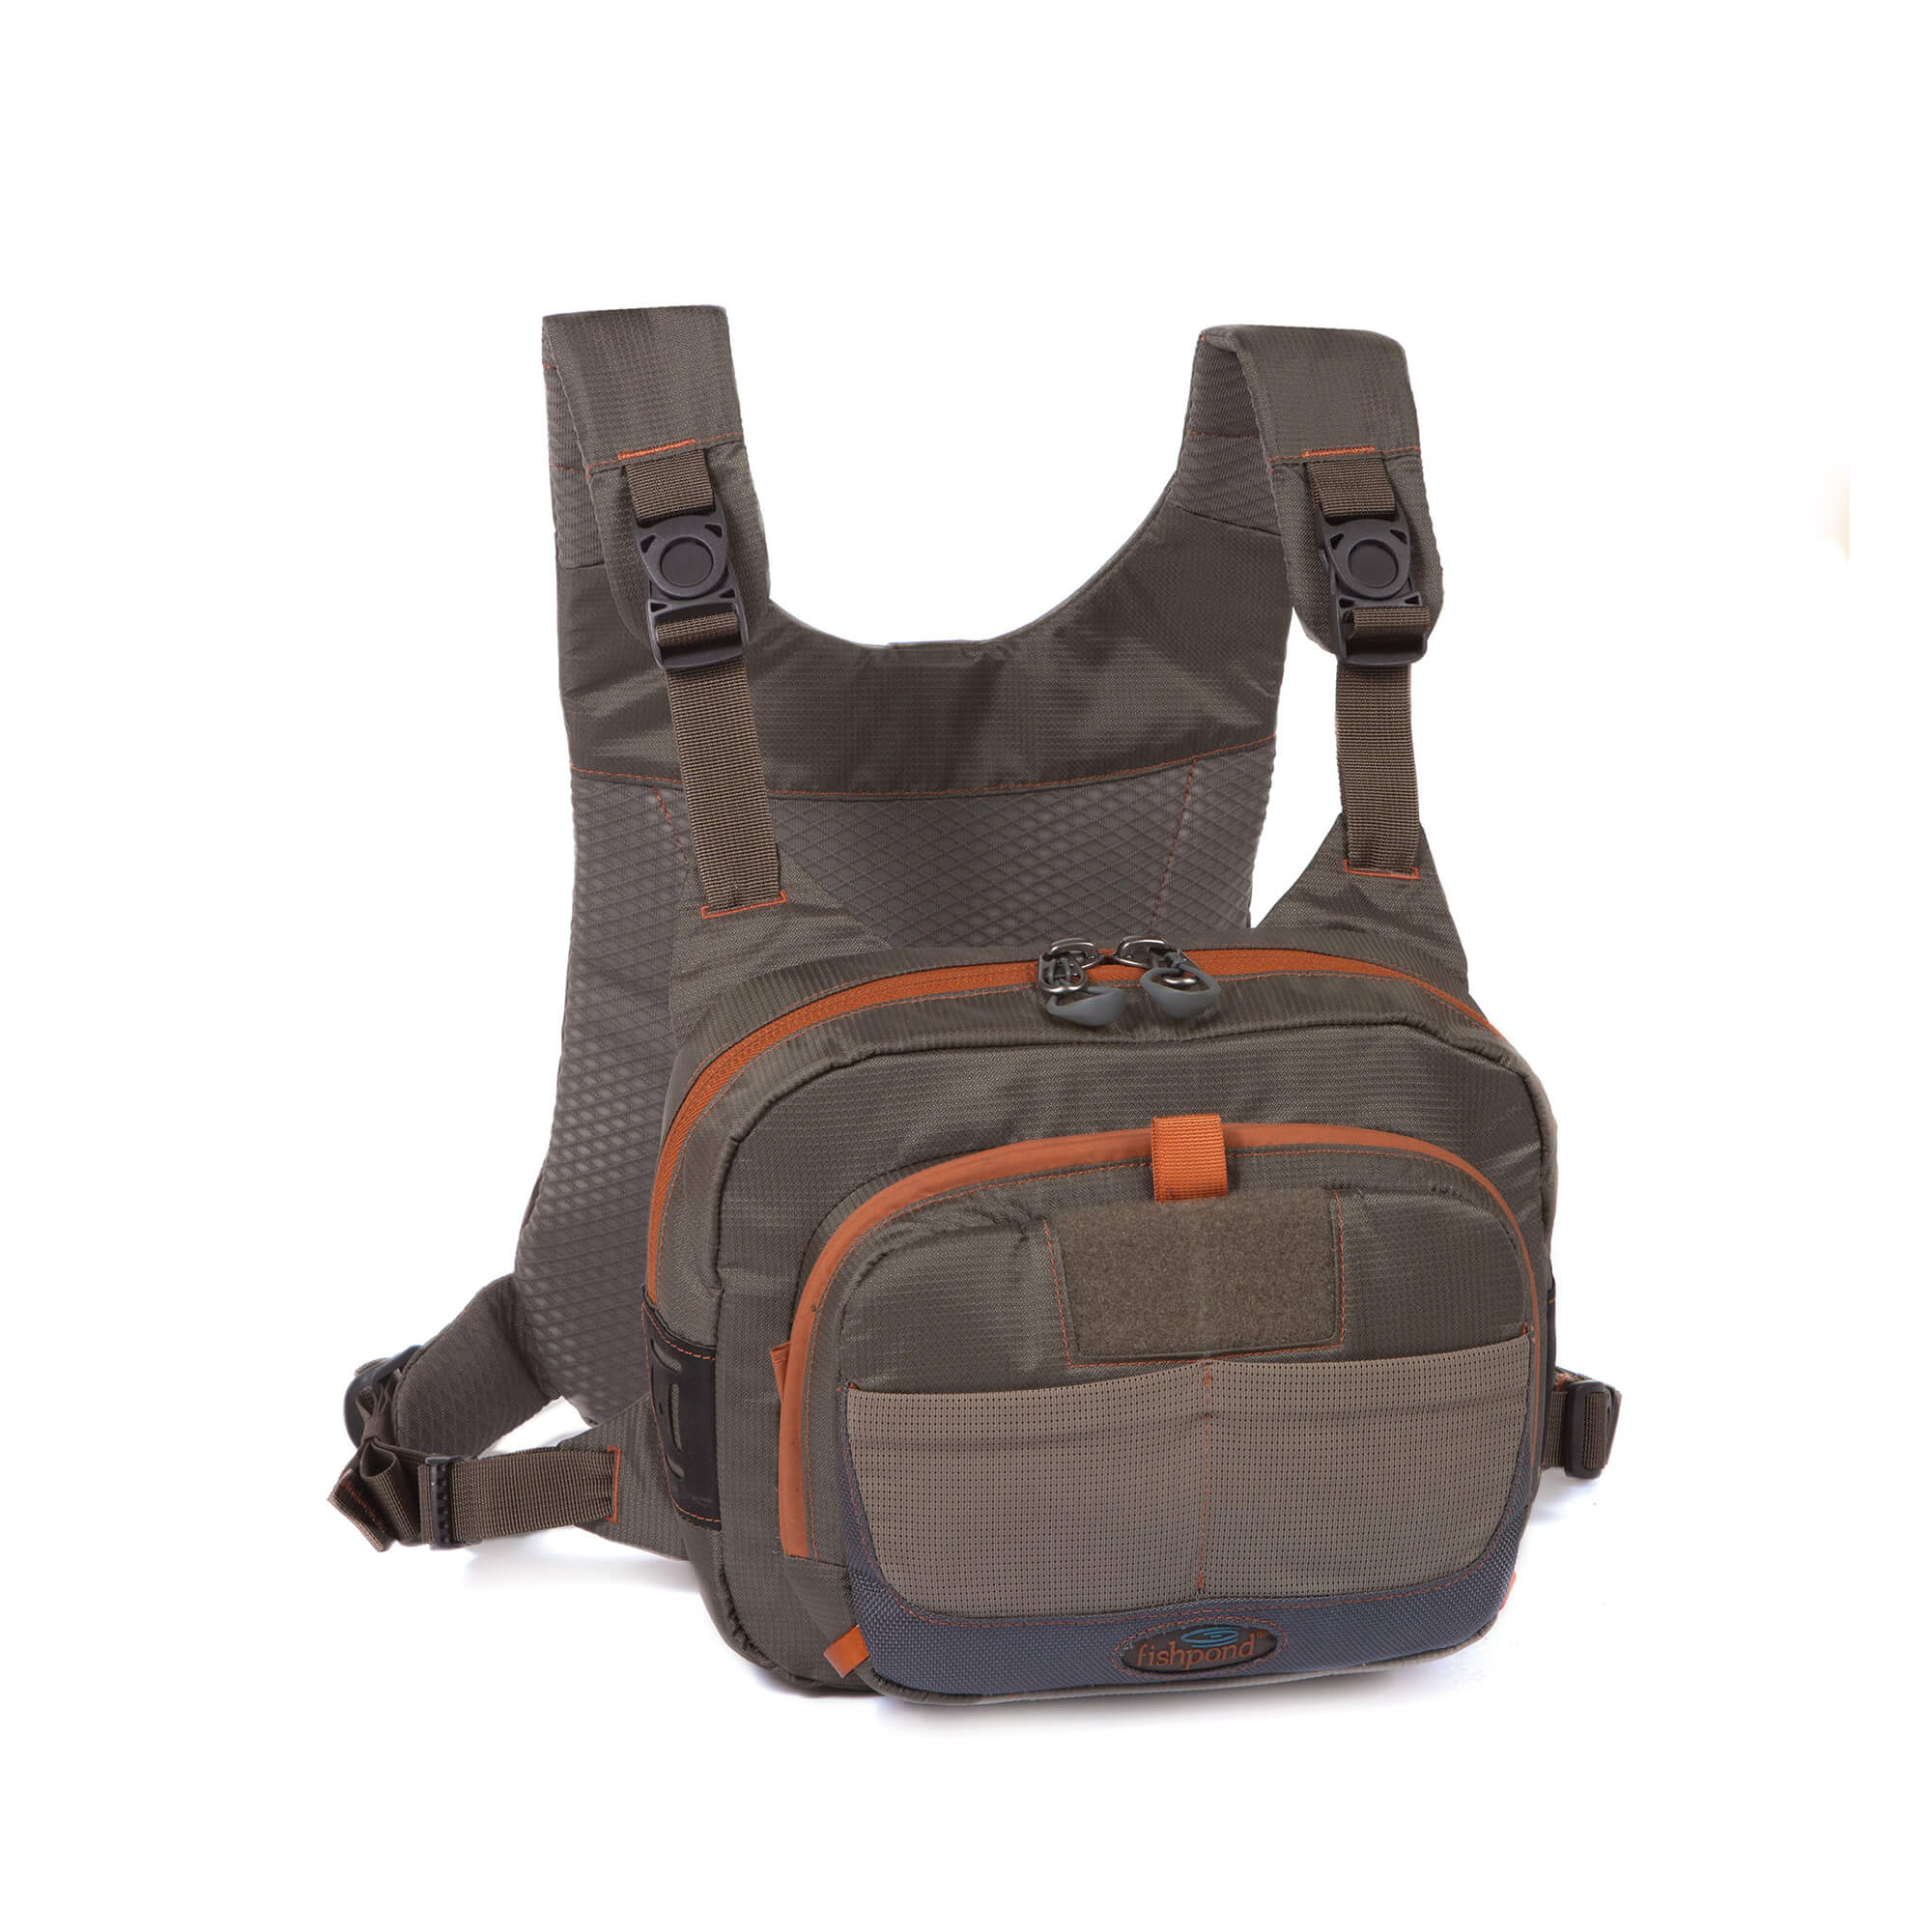 Fishpond Cross Current Chest Pack System